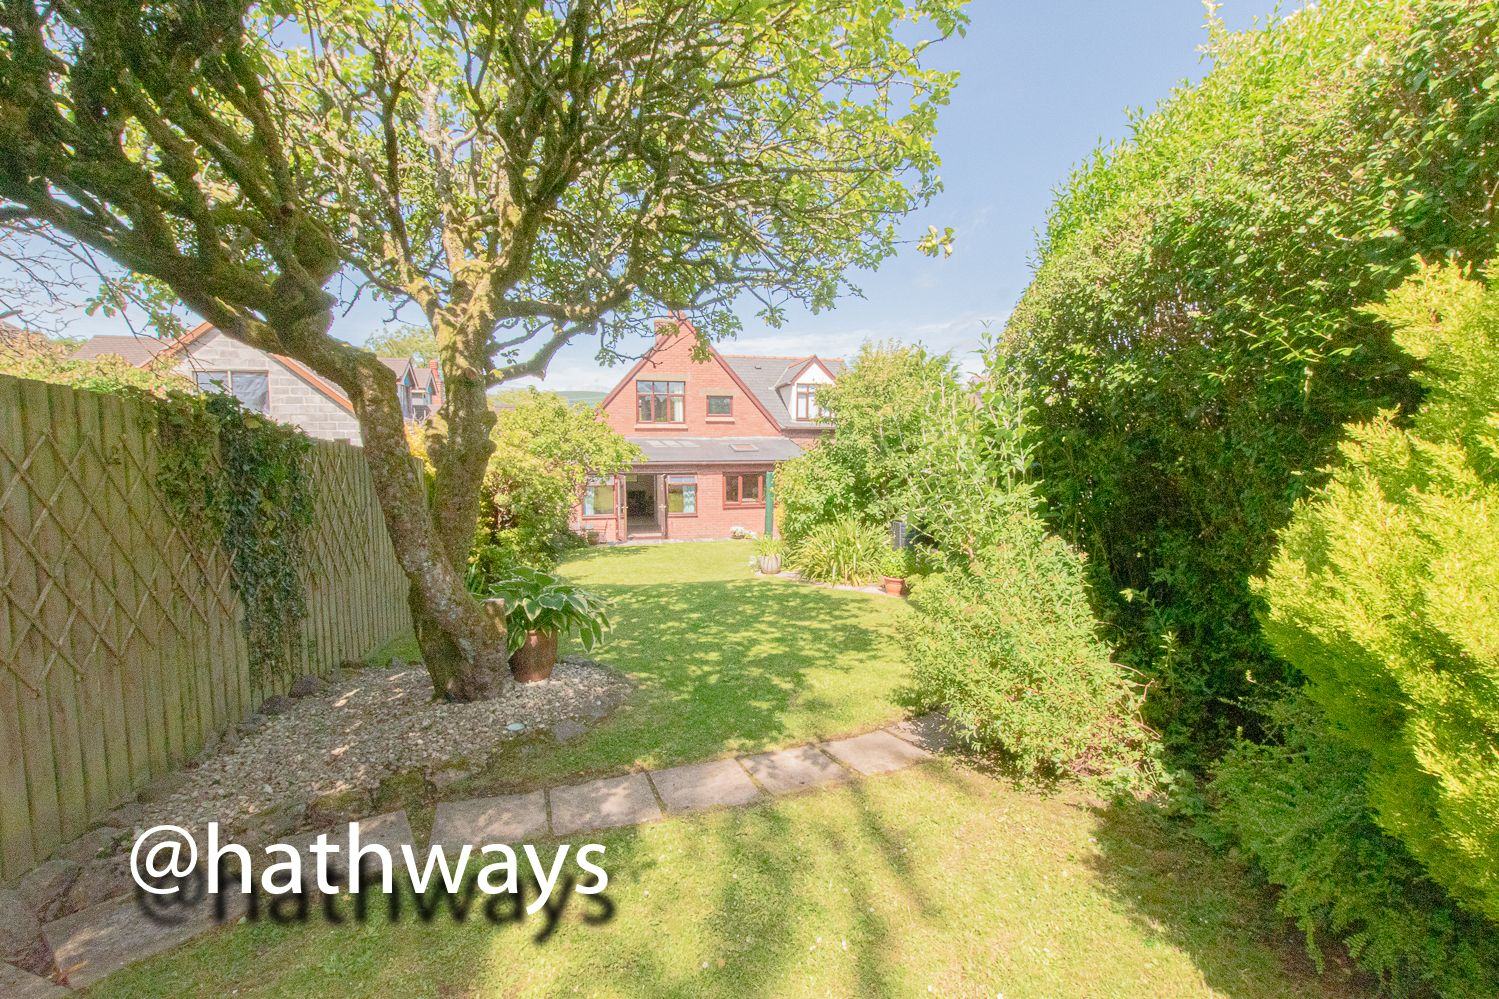 4 bed house for sale in Ashford Close South 55